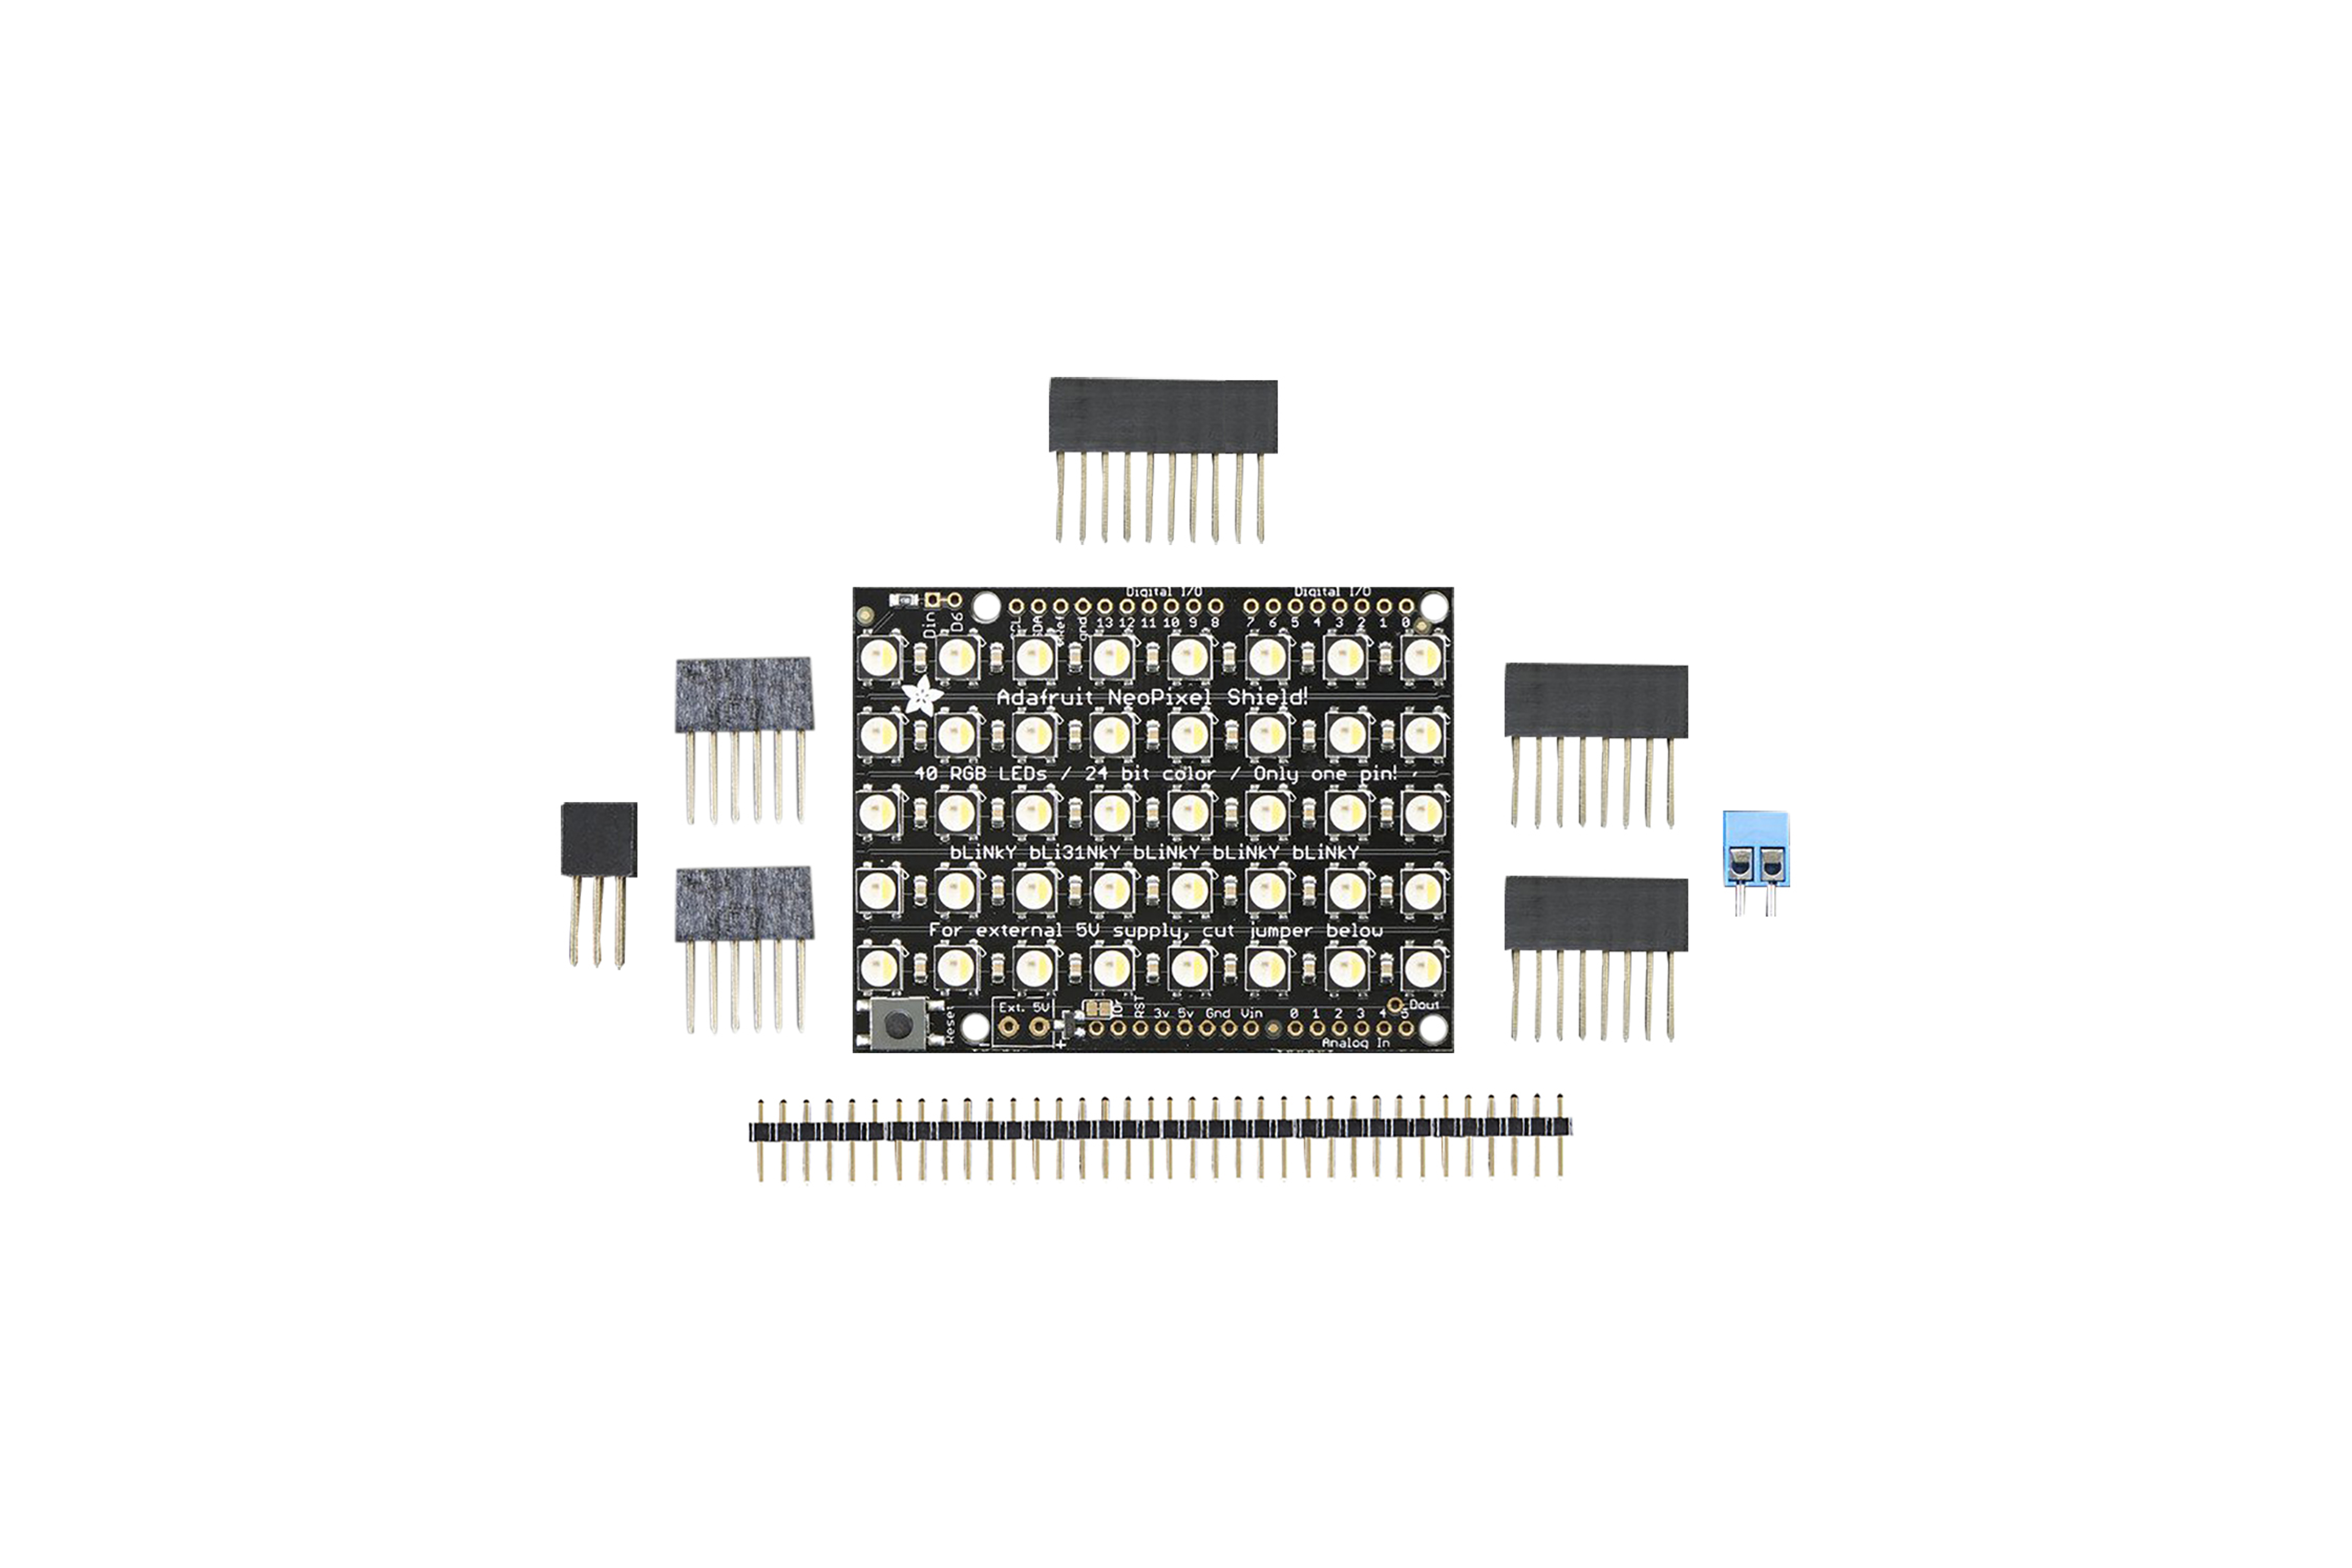 NEOPIXEL SHIELD 40 RGBW LED SHIELD 4500K